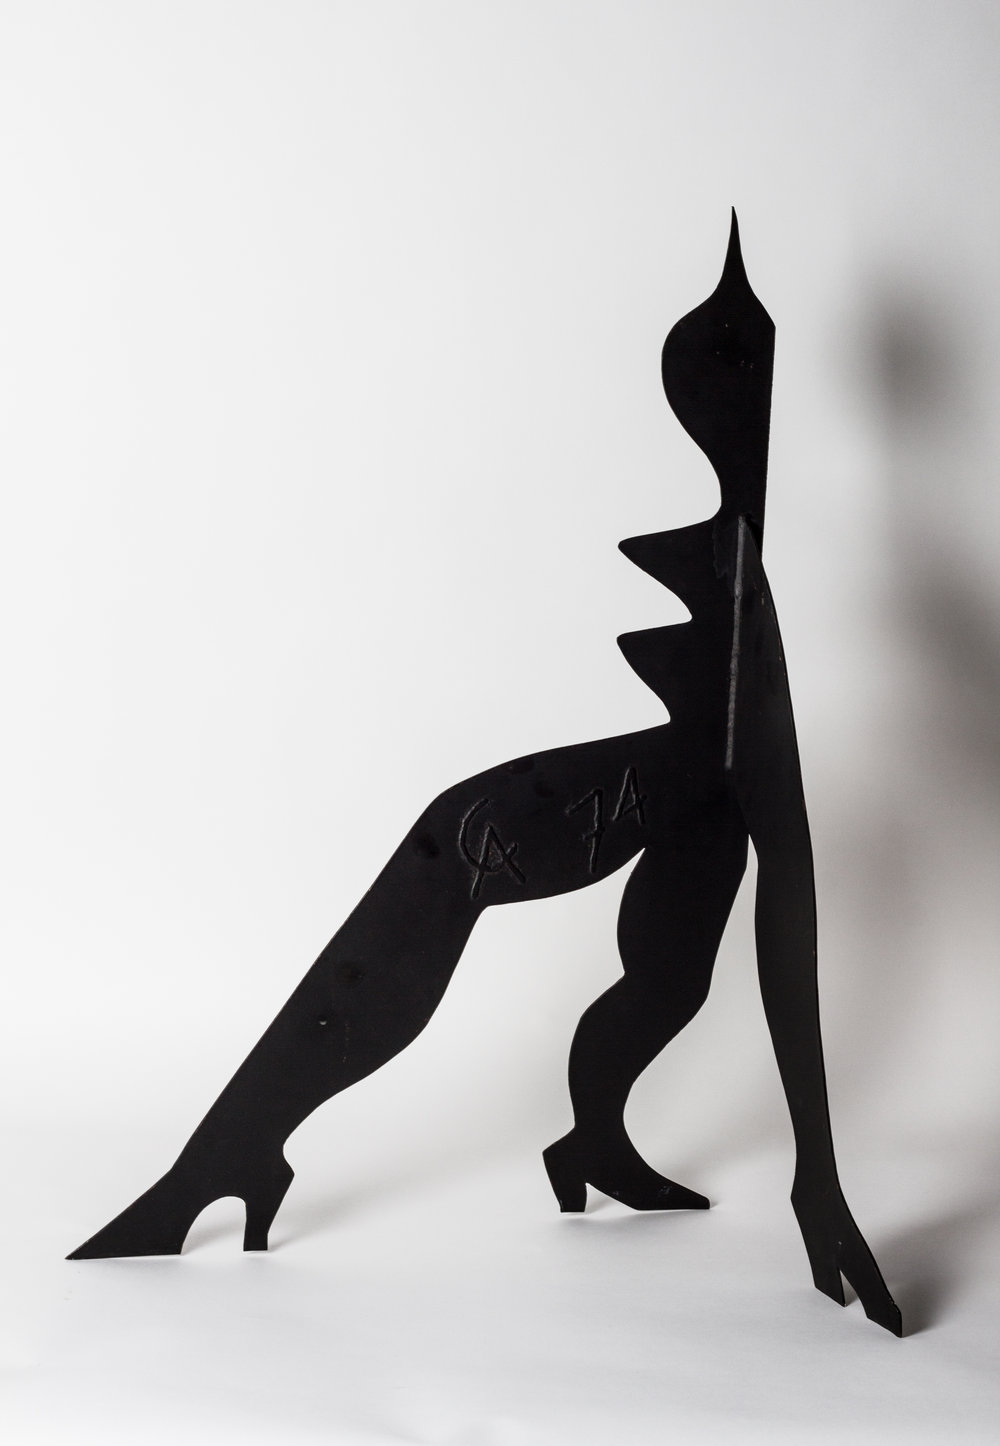 Petit critter aux trois seins , Stabile (Painted Steel), 1974, 31.44 x 16.5 x 18.07 in.